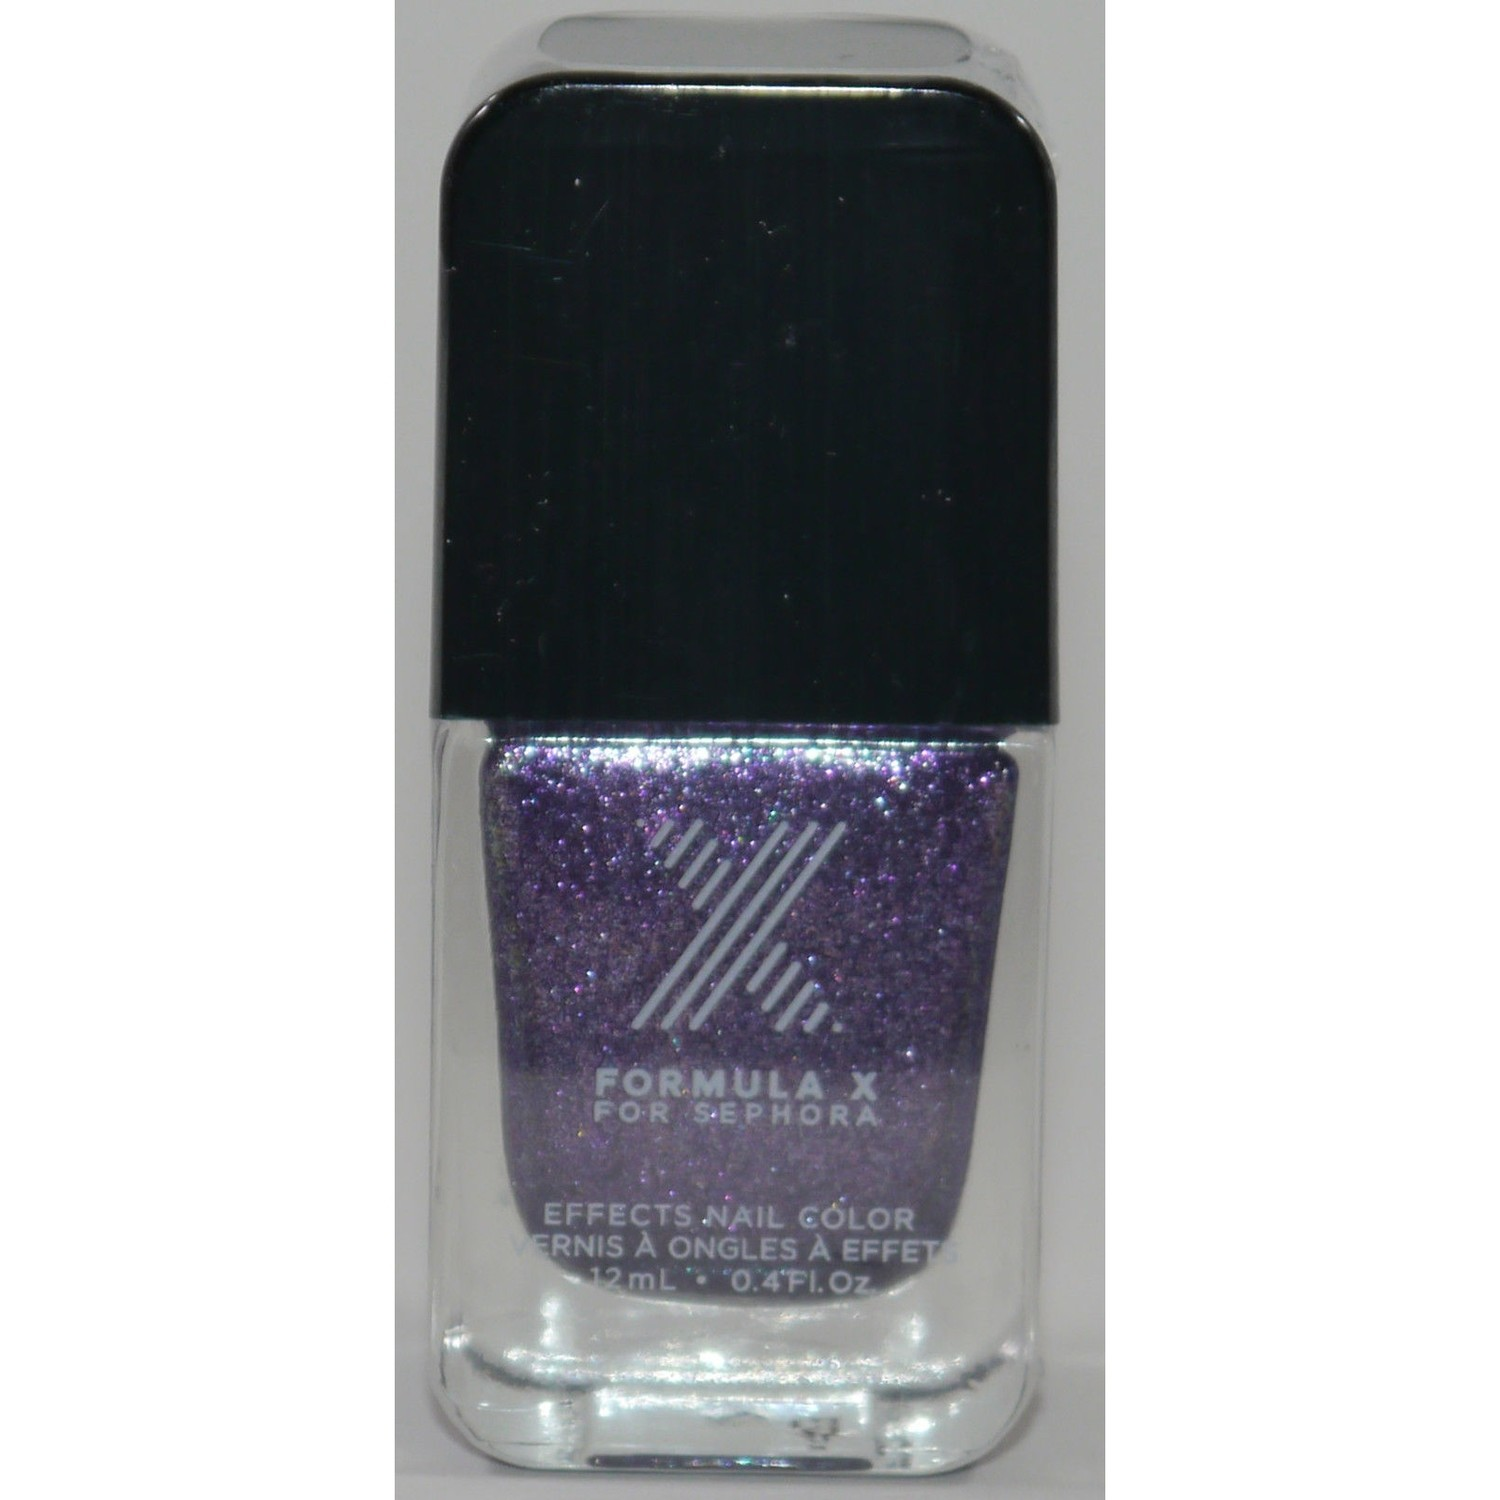 Astonishing Nail Color -FORMULA X For Sephora Effects Nail Color Polish Lacquer .4 oz